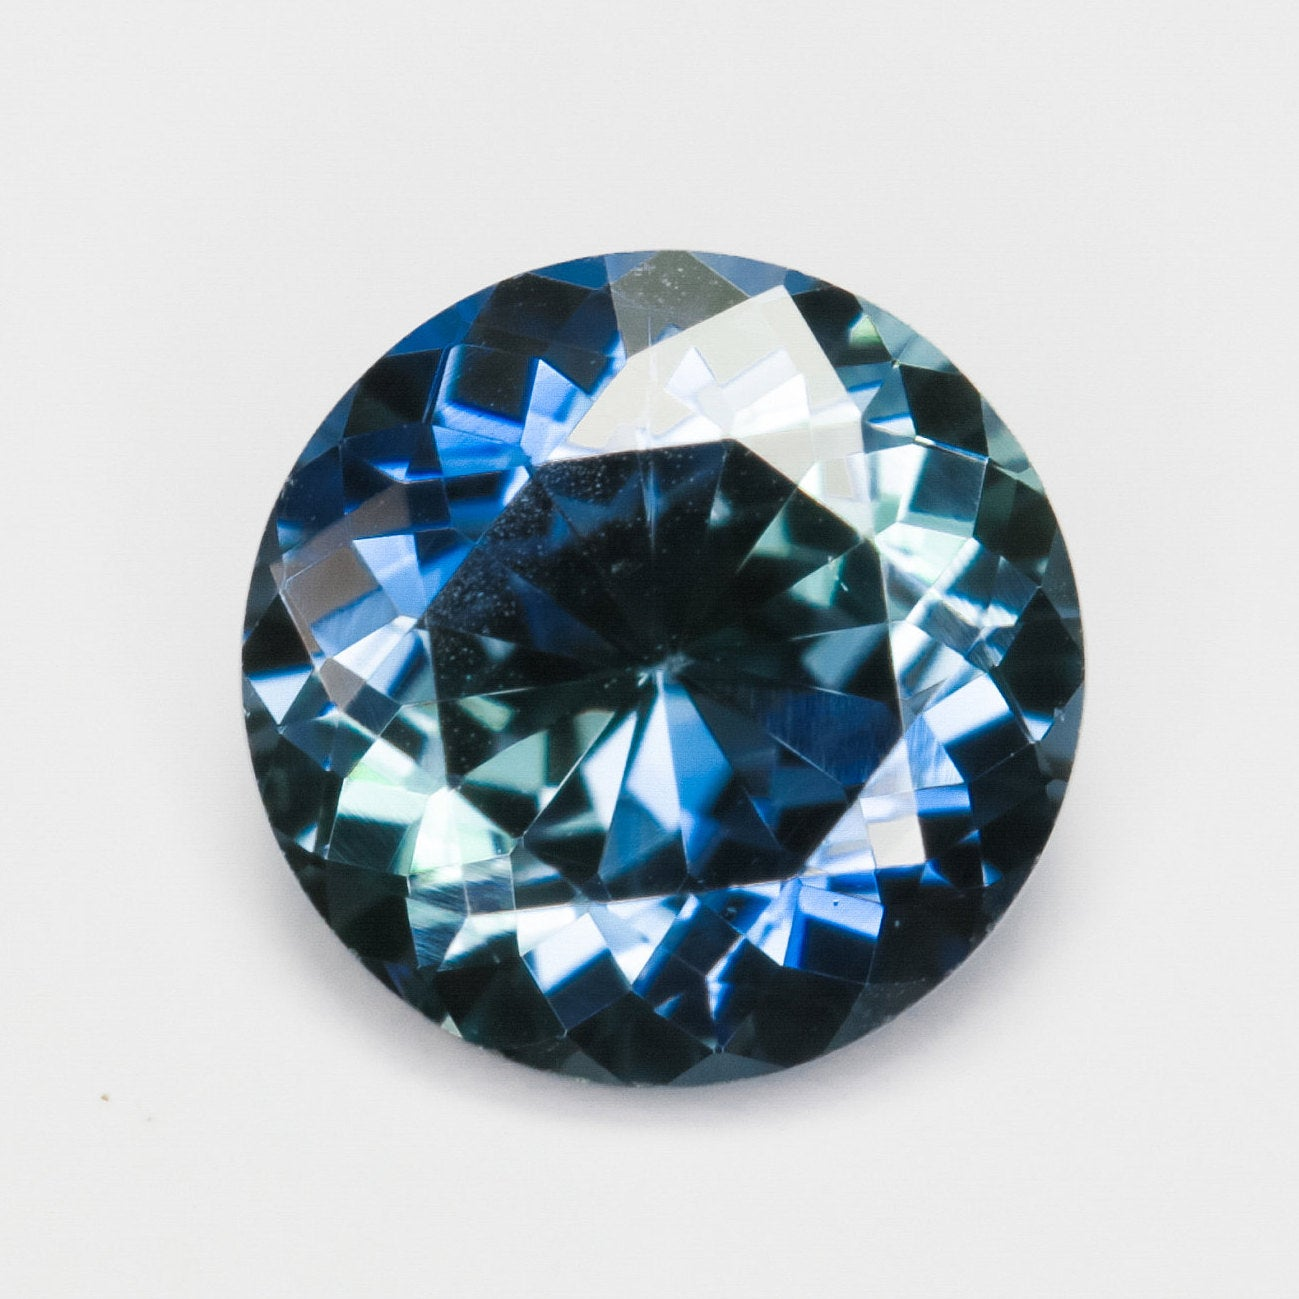 .52 carat round blue teal sapphire - custom work - inventory code: DBSR52 - Salt & Pepper Celestial Diamond Engagement Rings and Wedding Bands  by Midwinter Co.